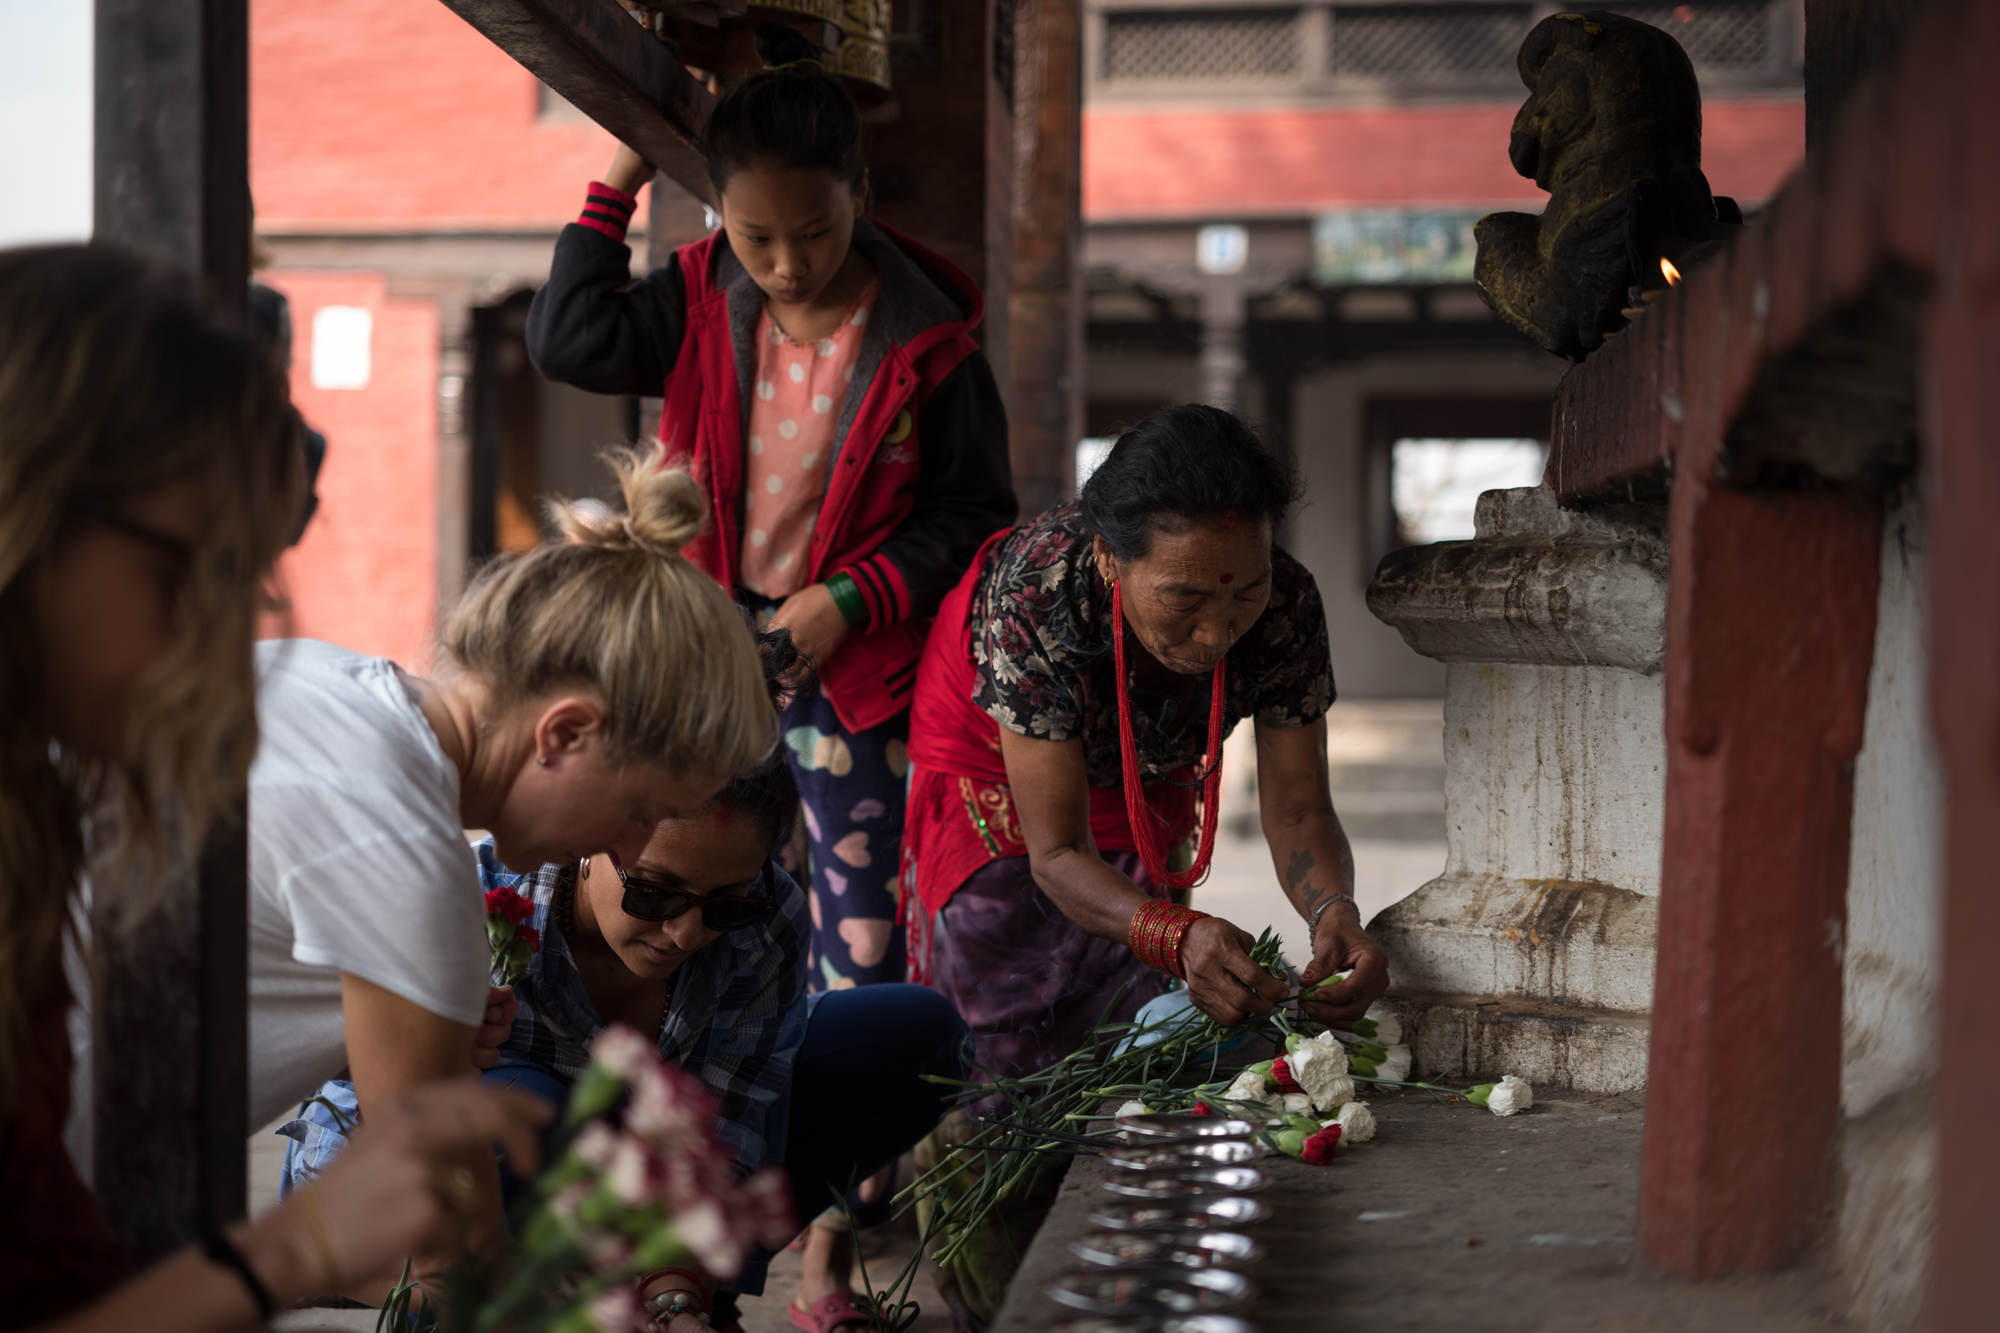 Nepal_Phill O'Leary_10_20181004-L1009429.jpg